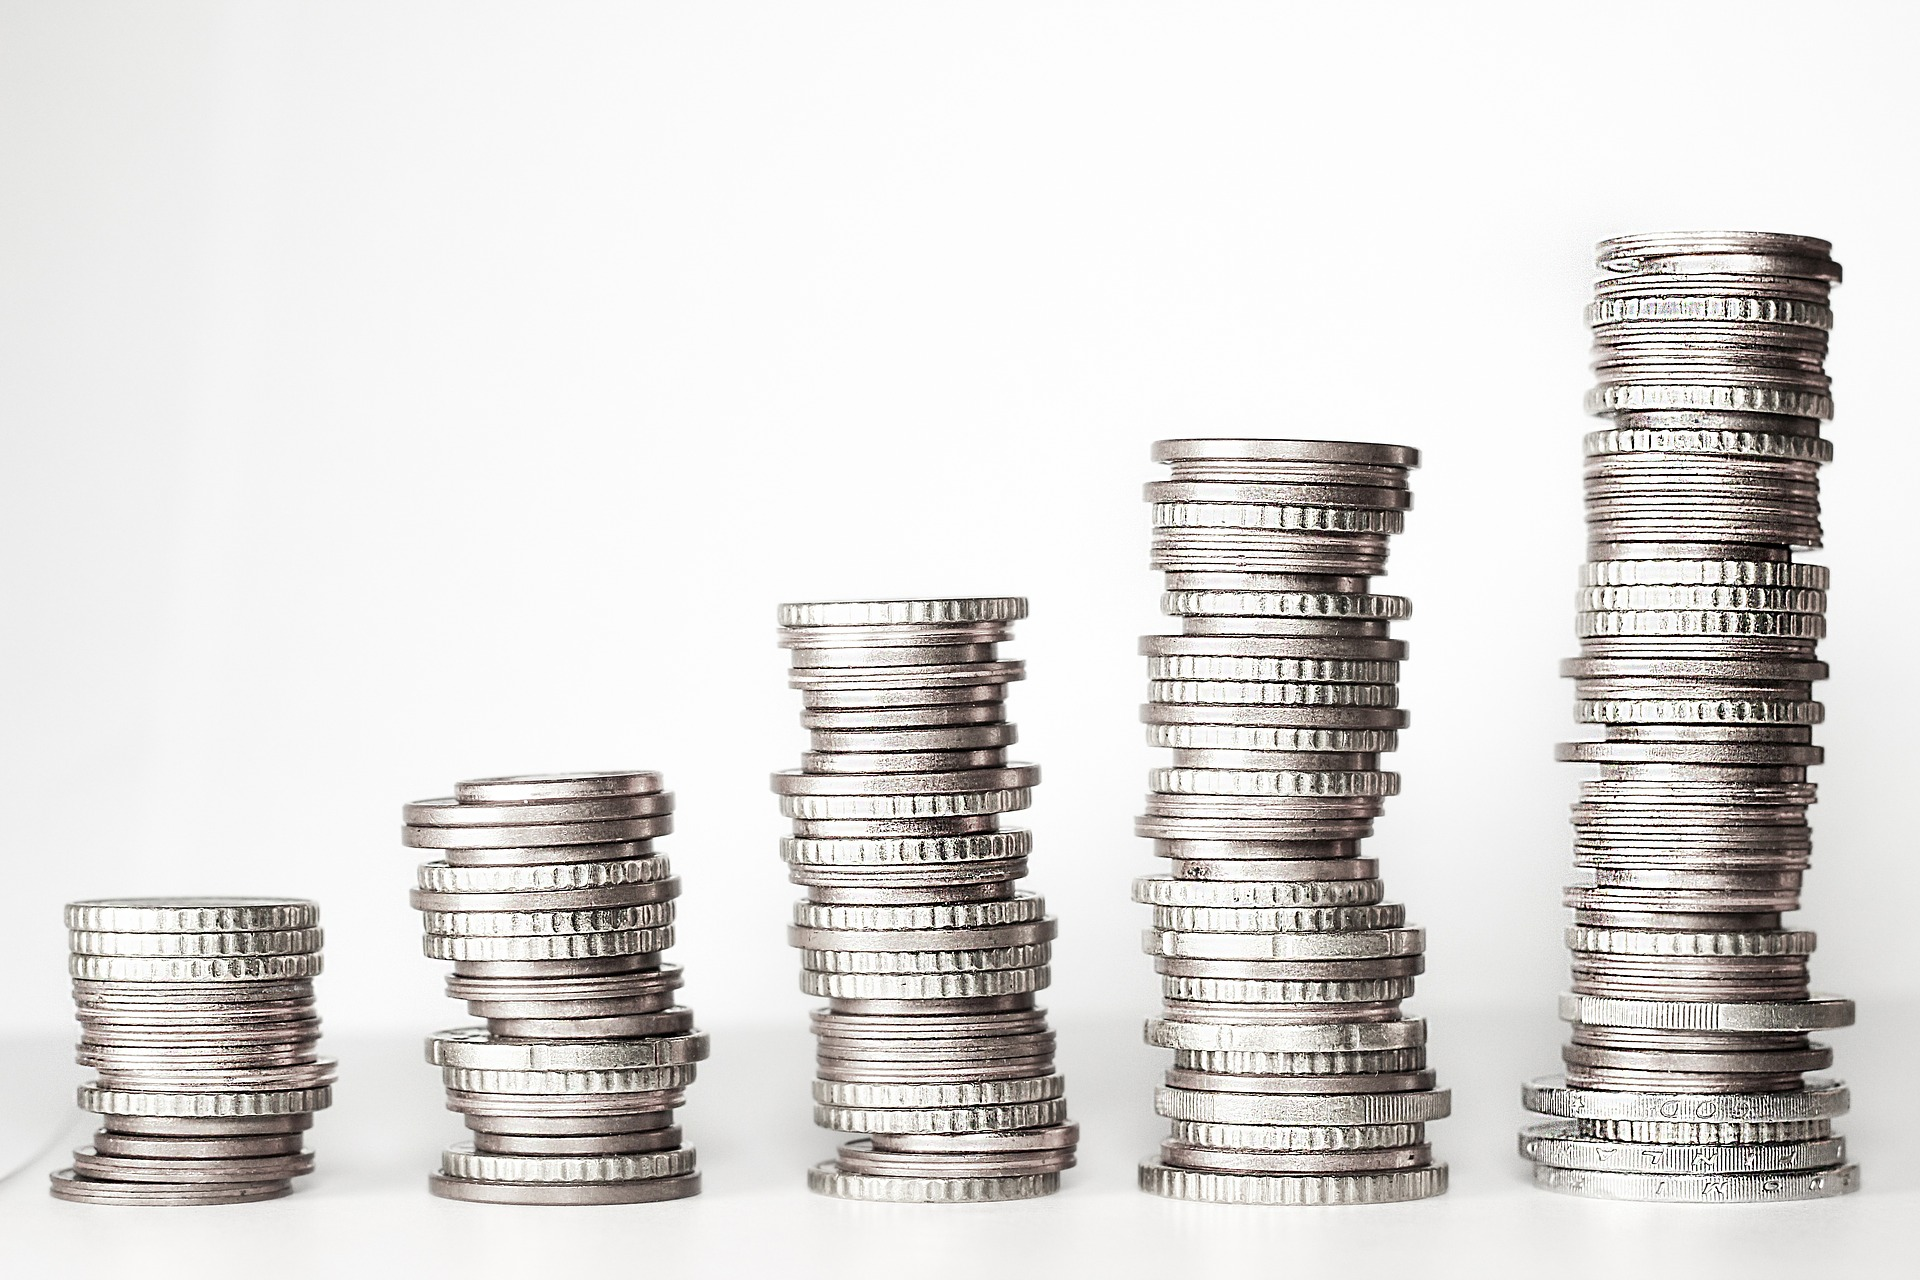 Image of stacks of coins